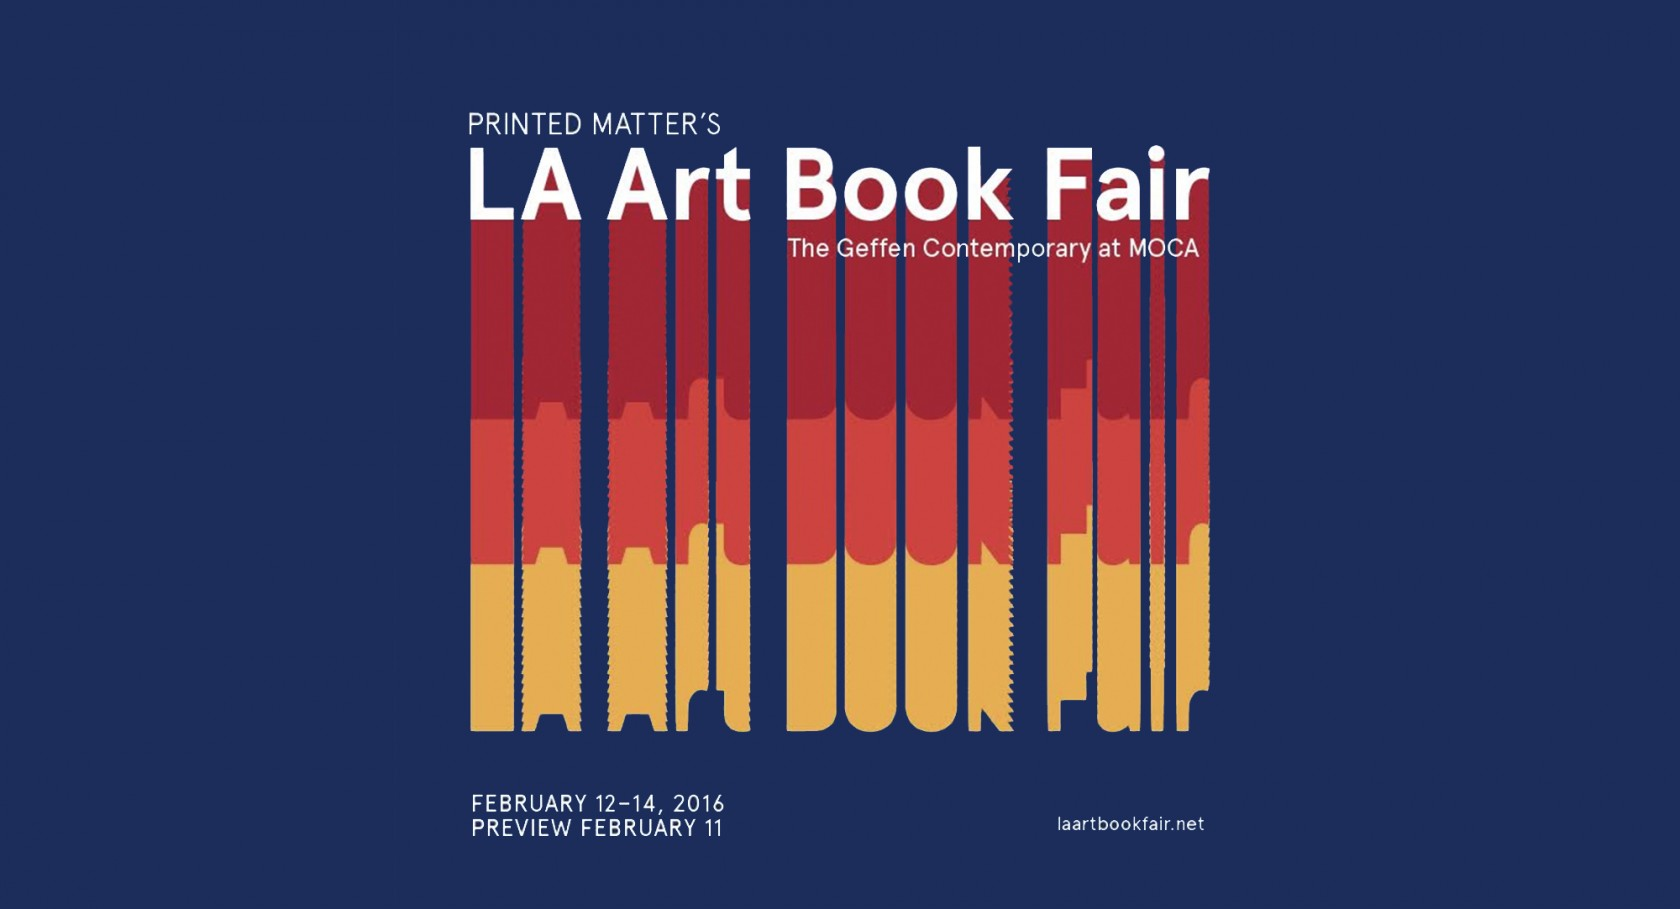 Printed Matter's LA Art Book Fair 2016 Image